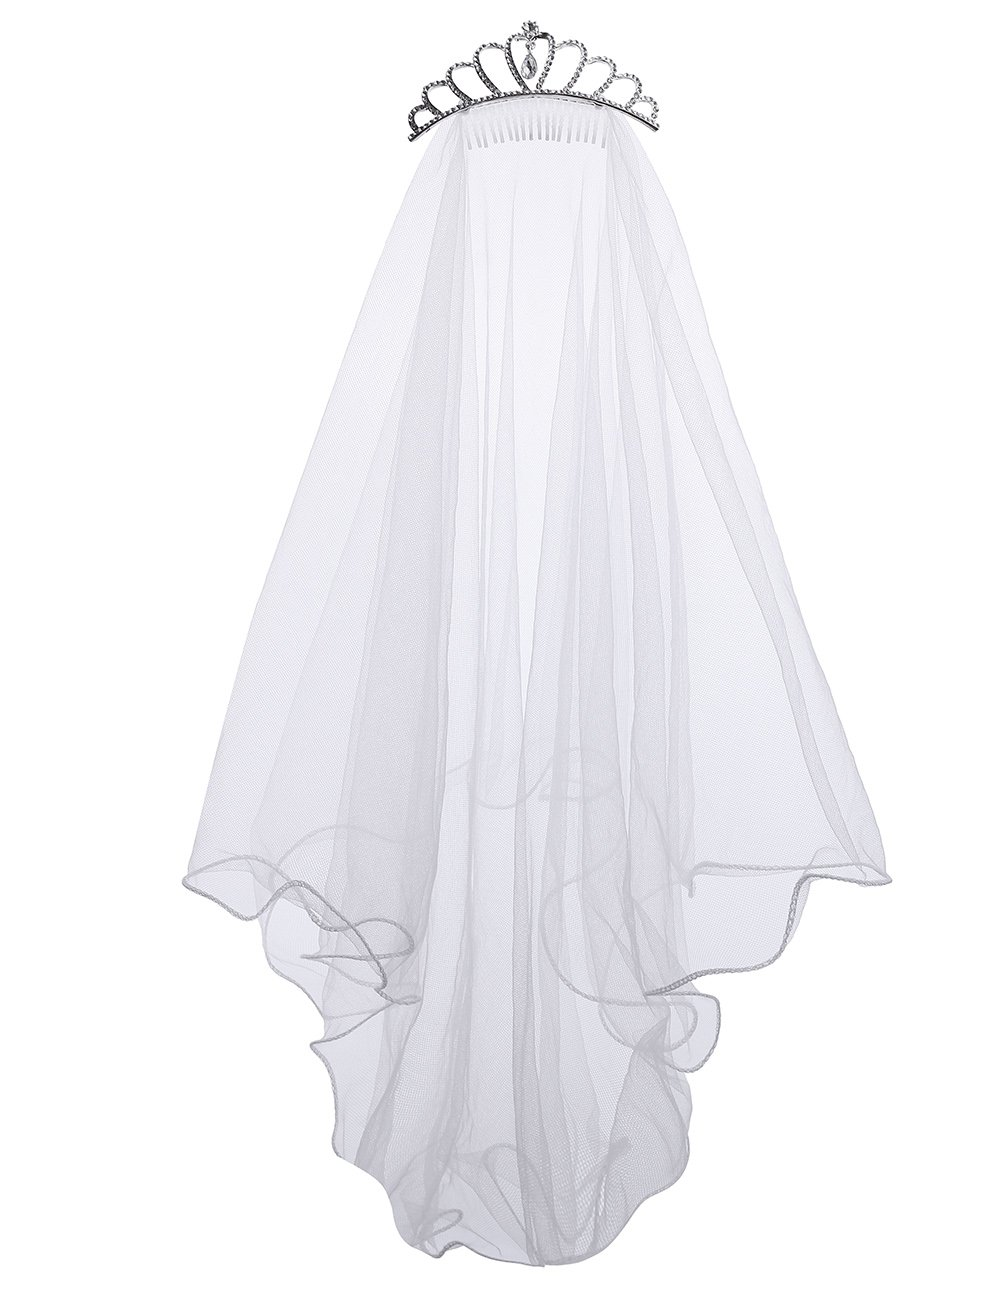 Flower Girls White Catholic Religious First Communion Veil Headband with Bow (One size, White (Crown))